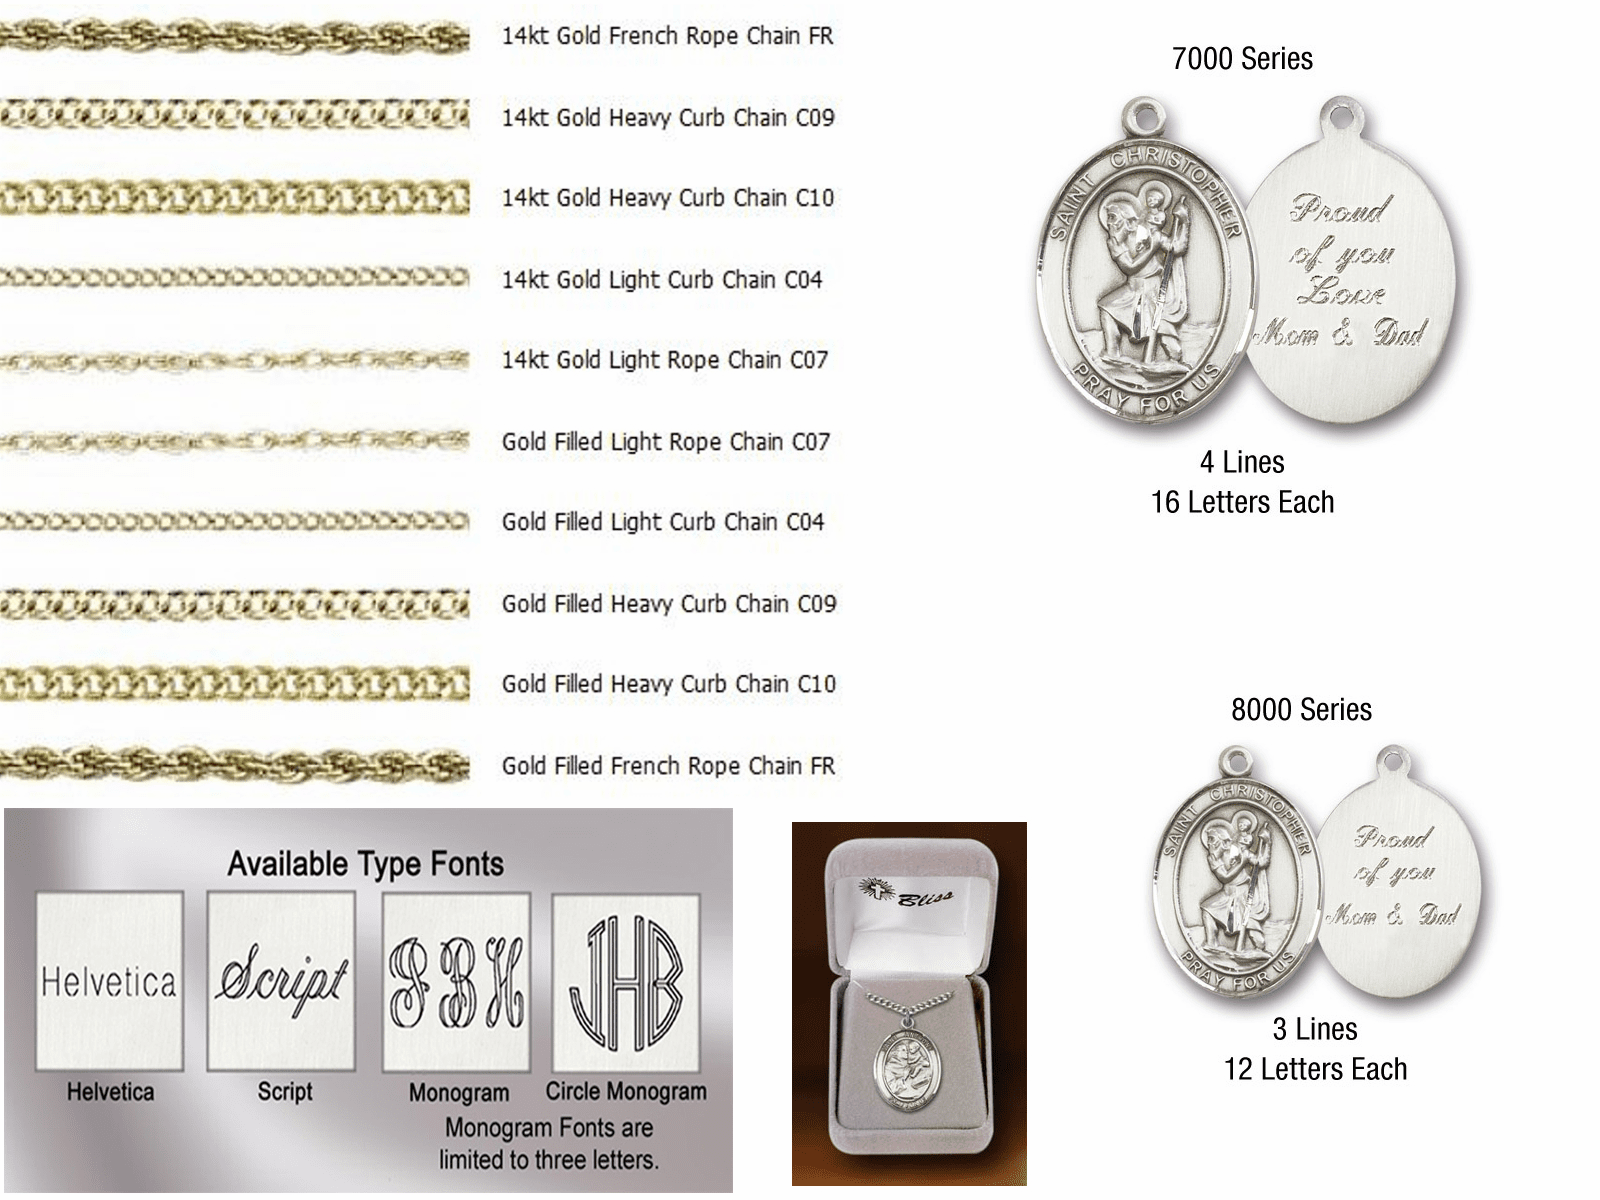 Bliss Manufacturing 14kt Gold Engraving and Chain Options